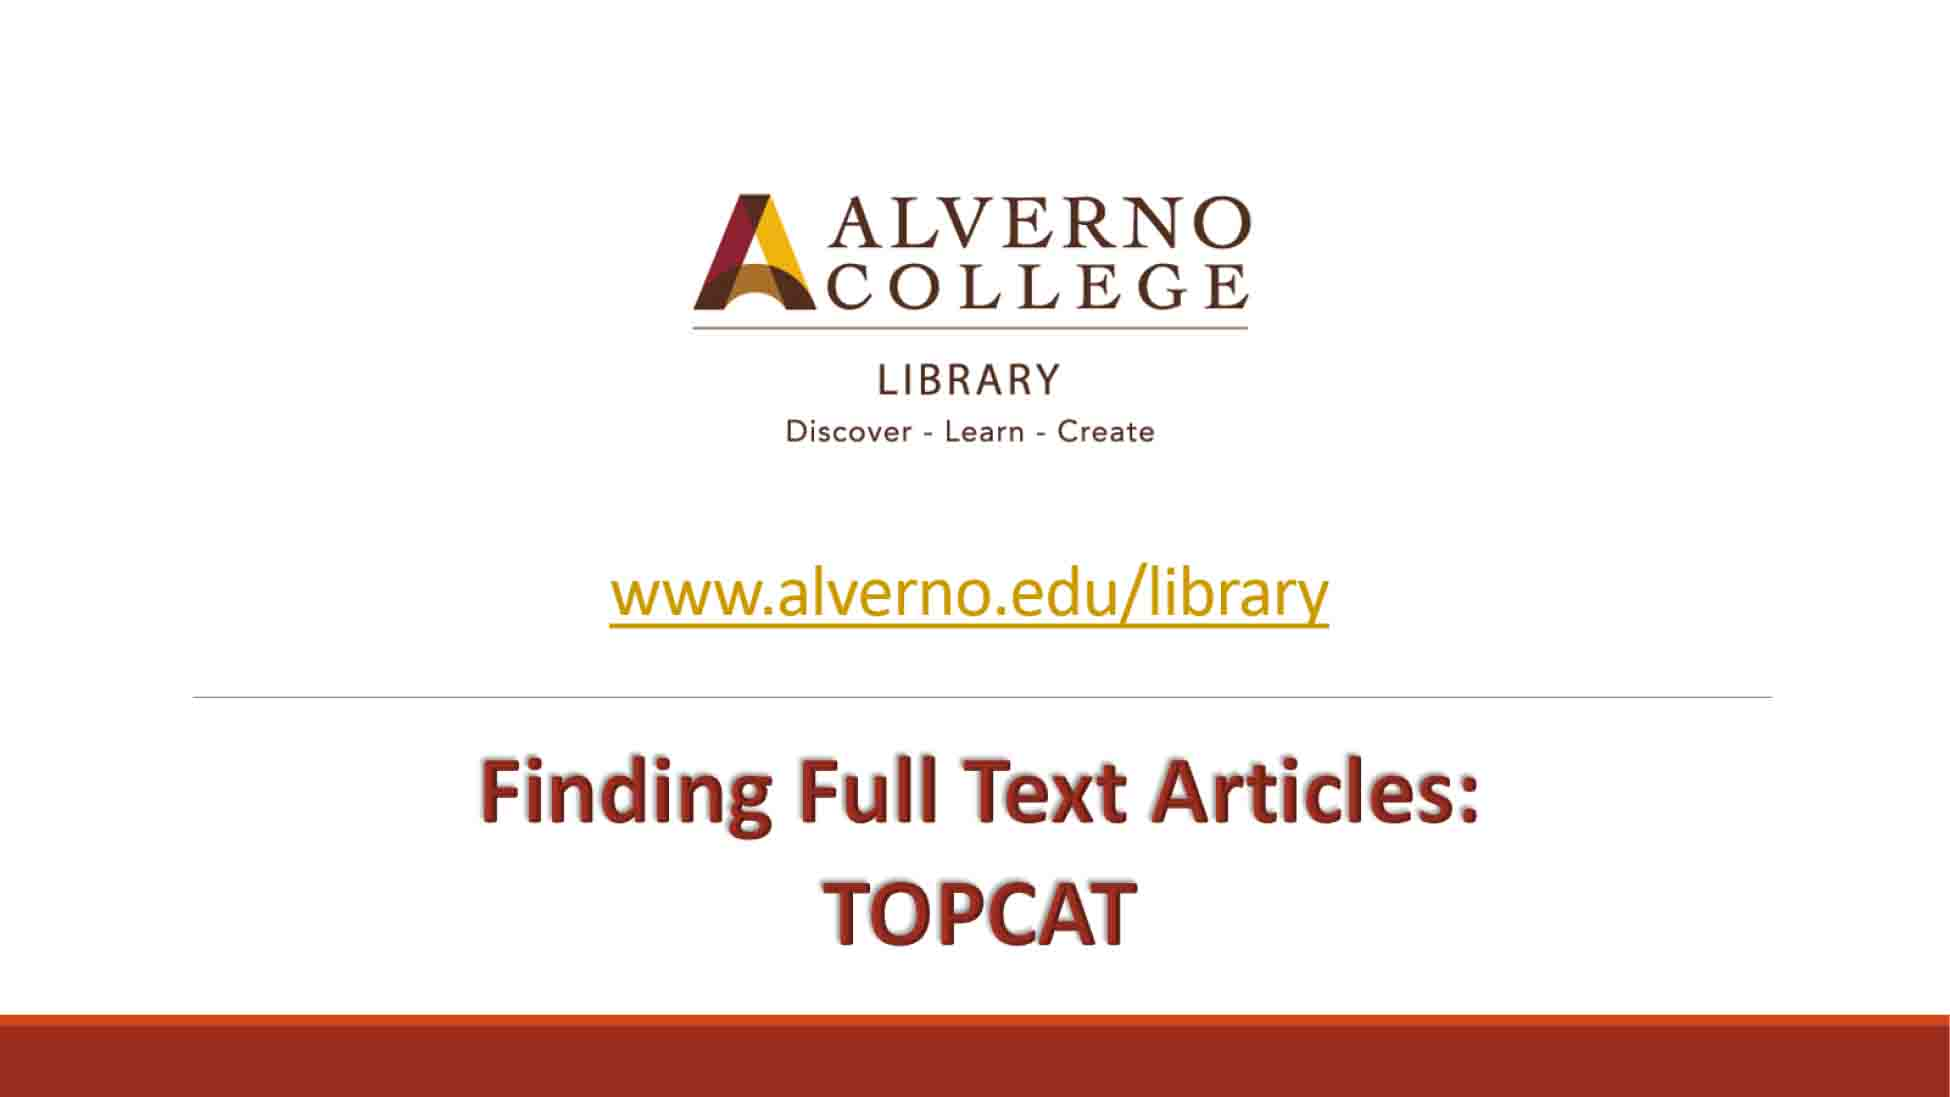 Finding full text TOPCAT video